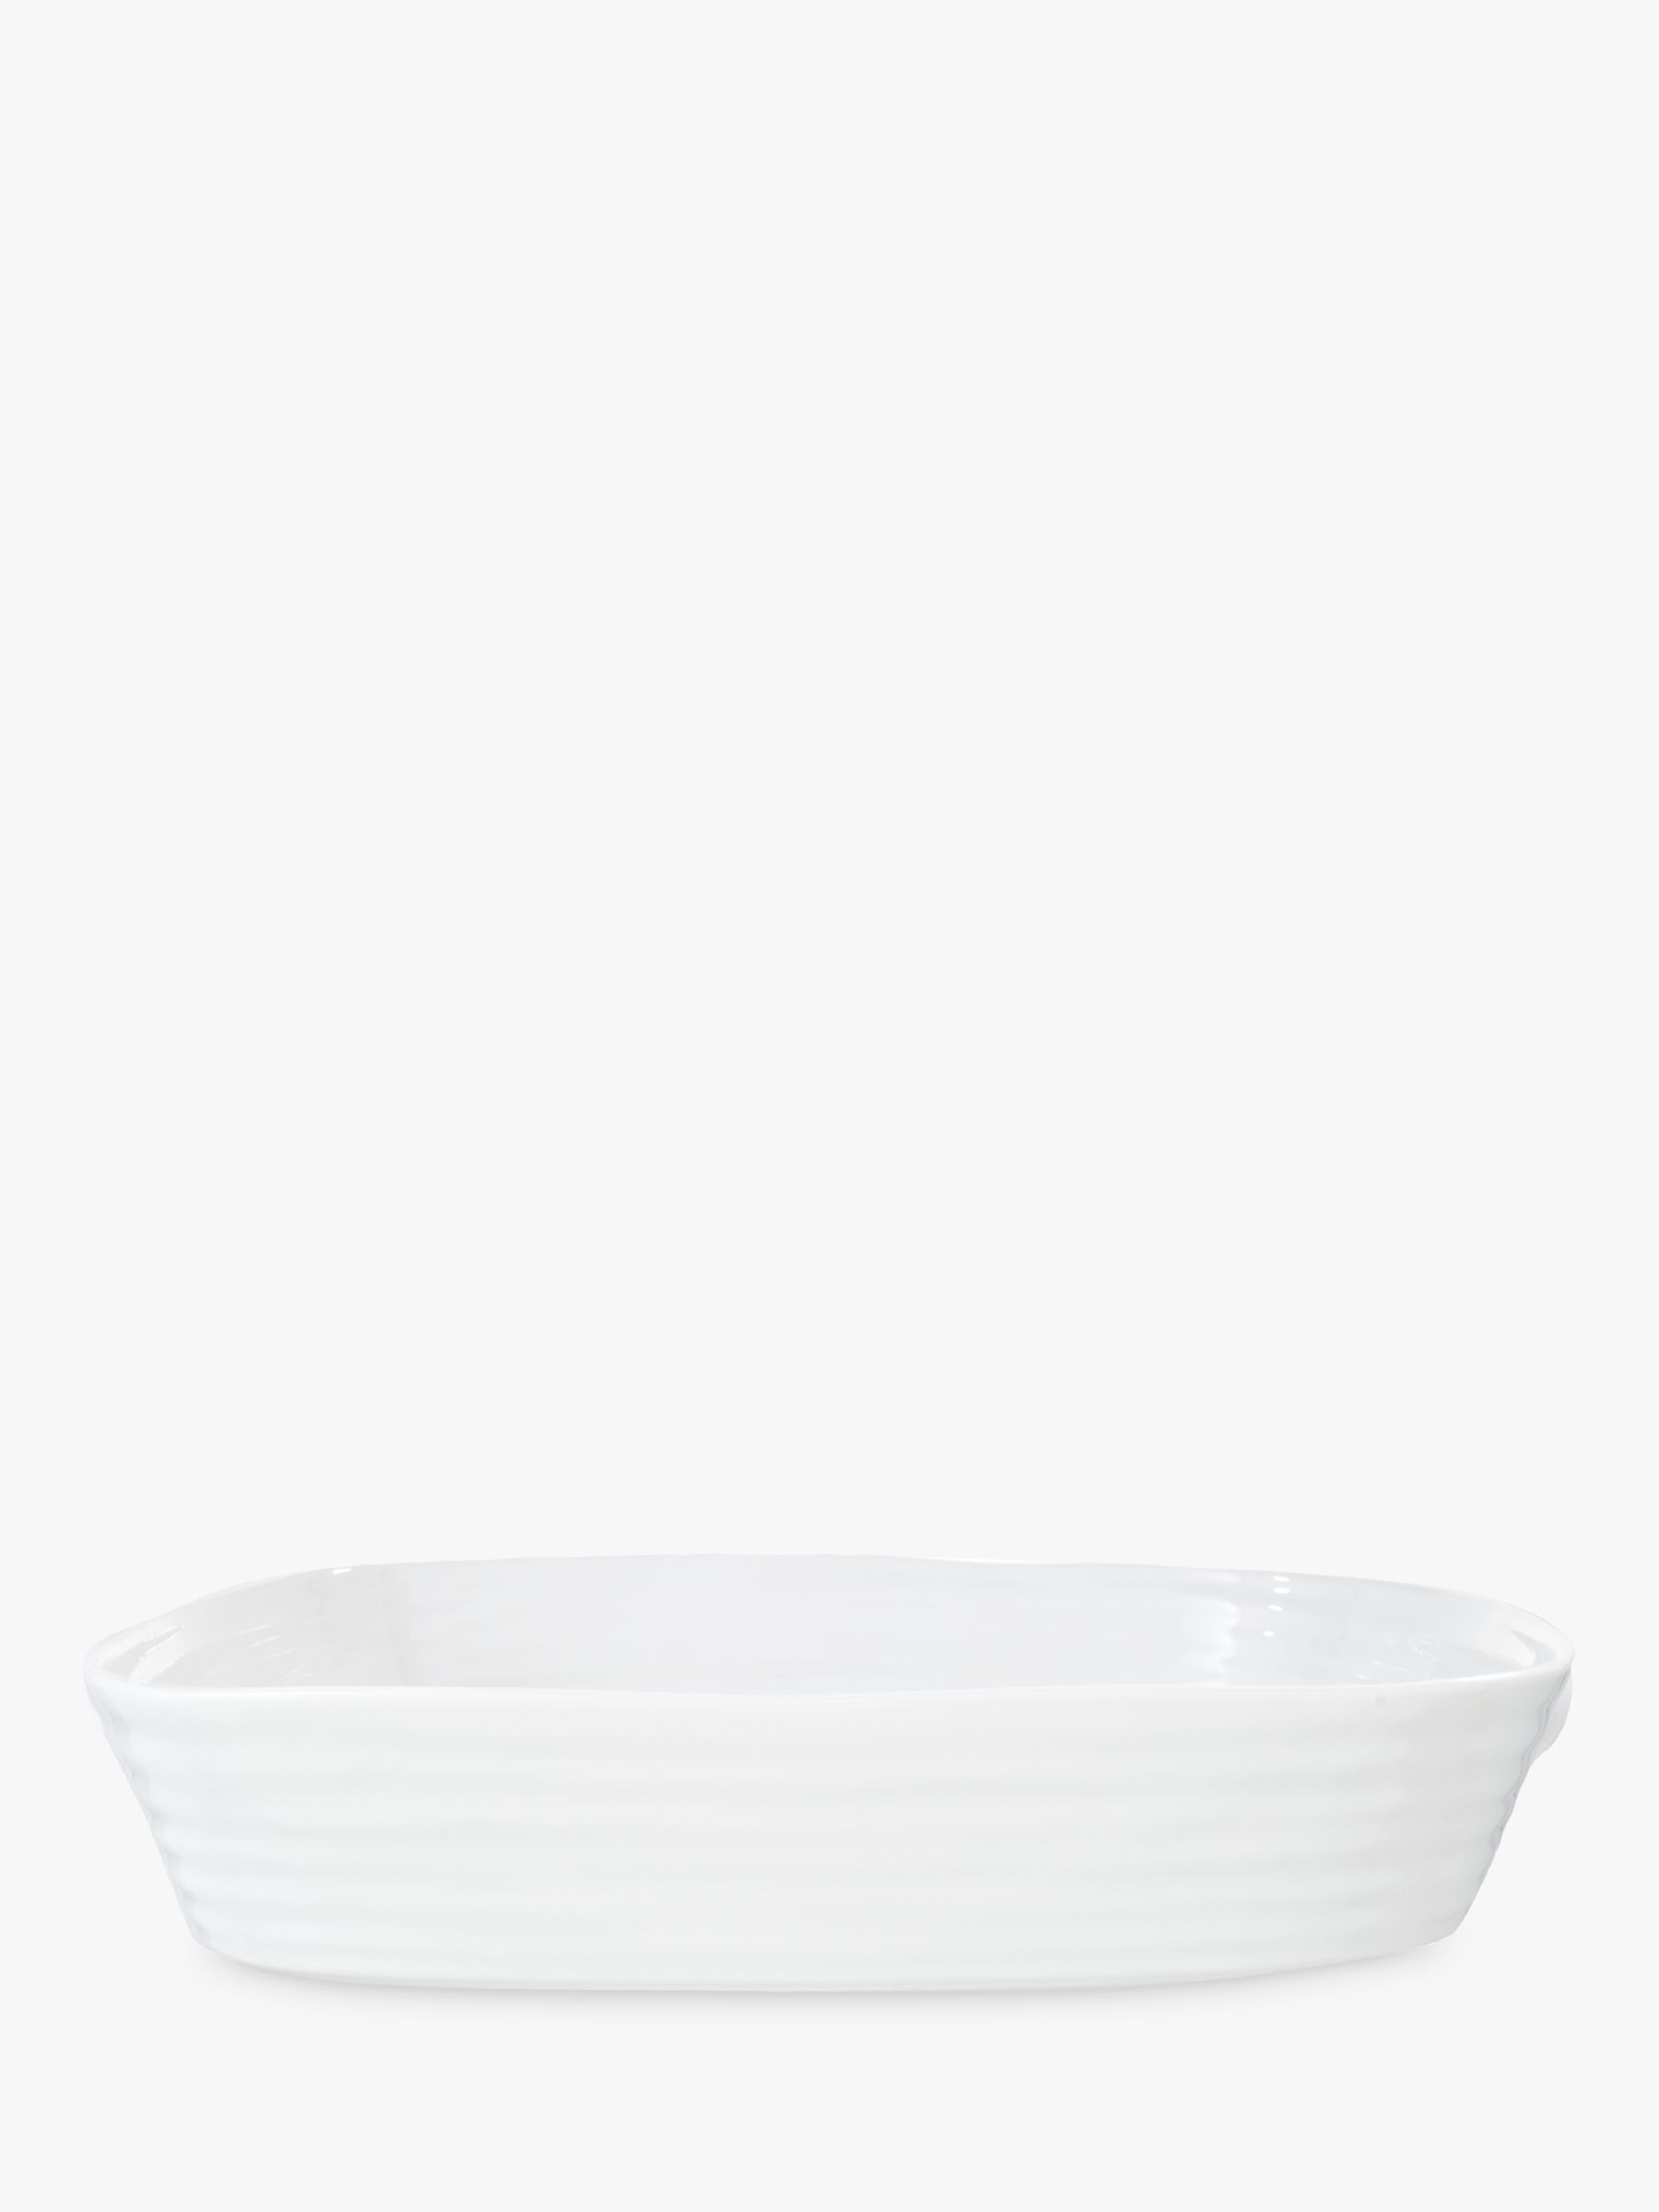 Sophie Conran for Portmeirion Sophie Conran for Portmeirion Roasting Dish with Handle